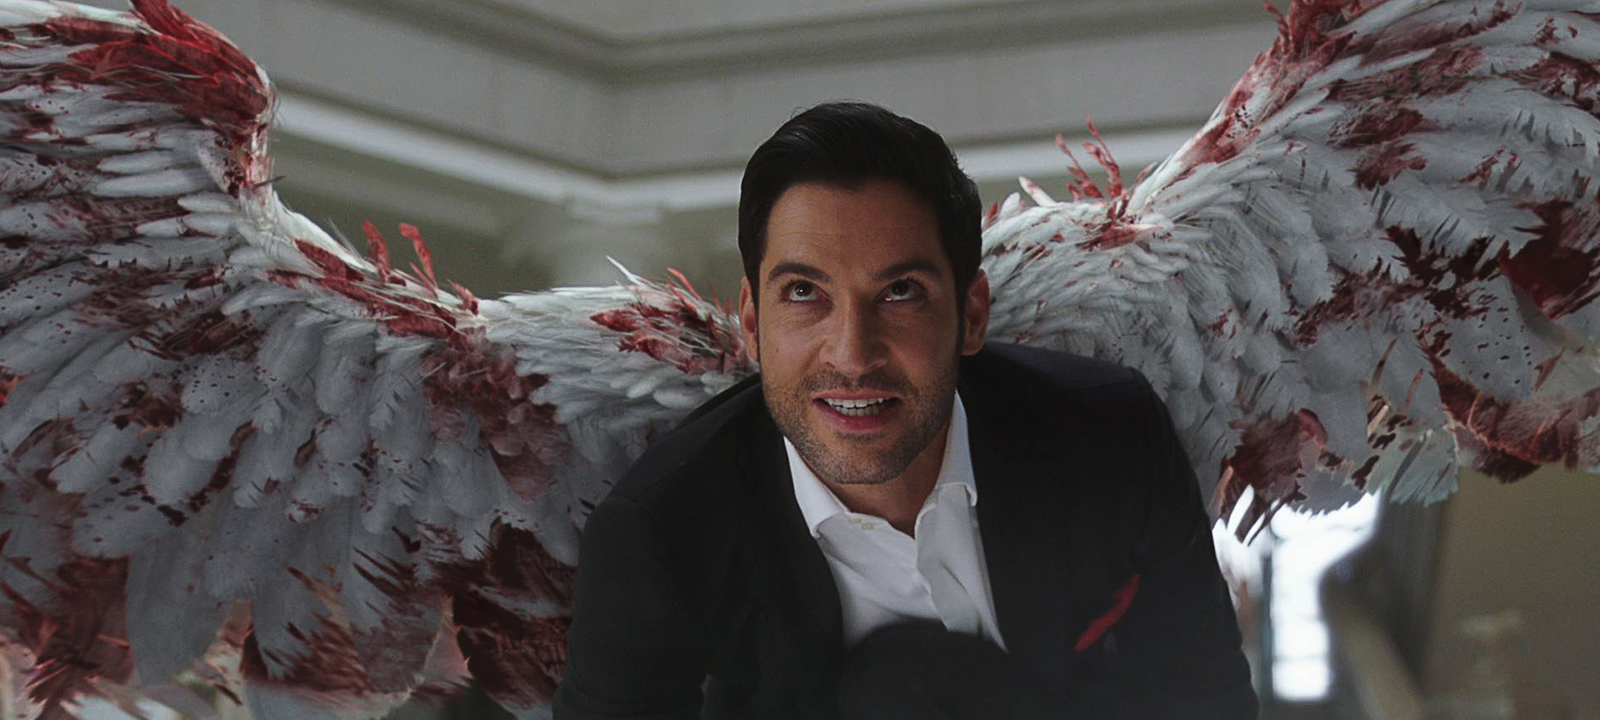 The Devil's in the Details: The Visual Effects of Lucifer